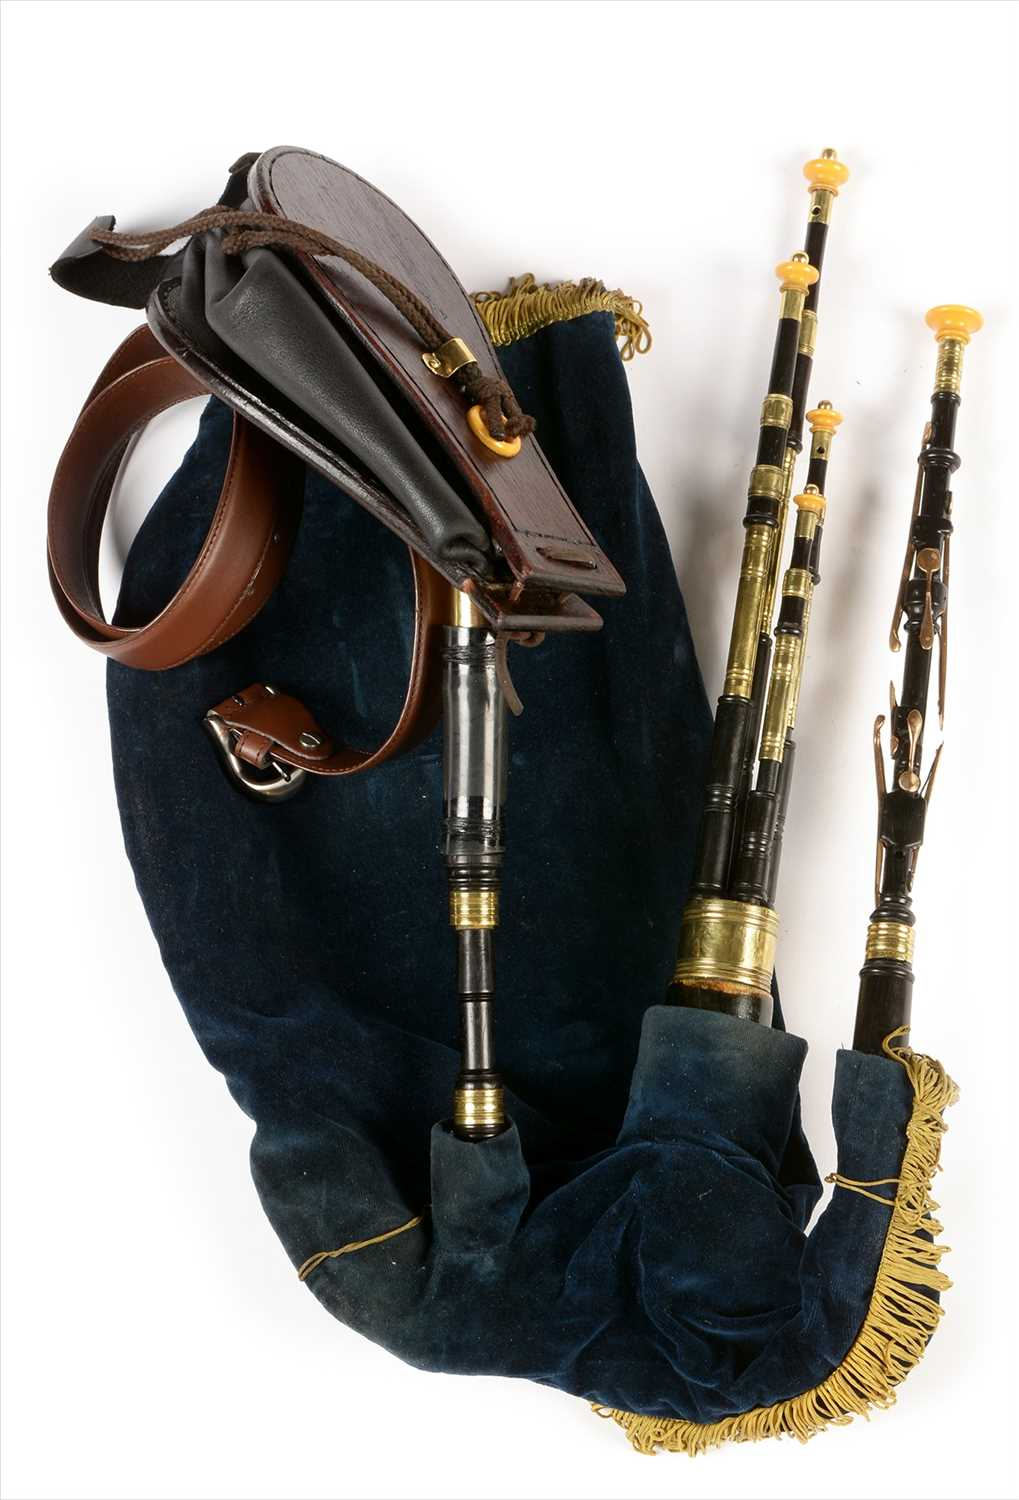 Lot 222 - Set of Northumbrian small pipes.